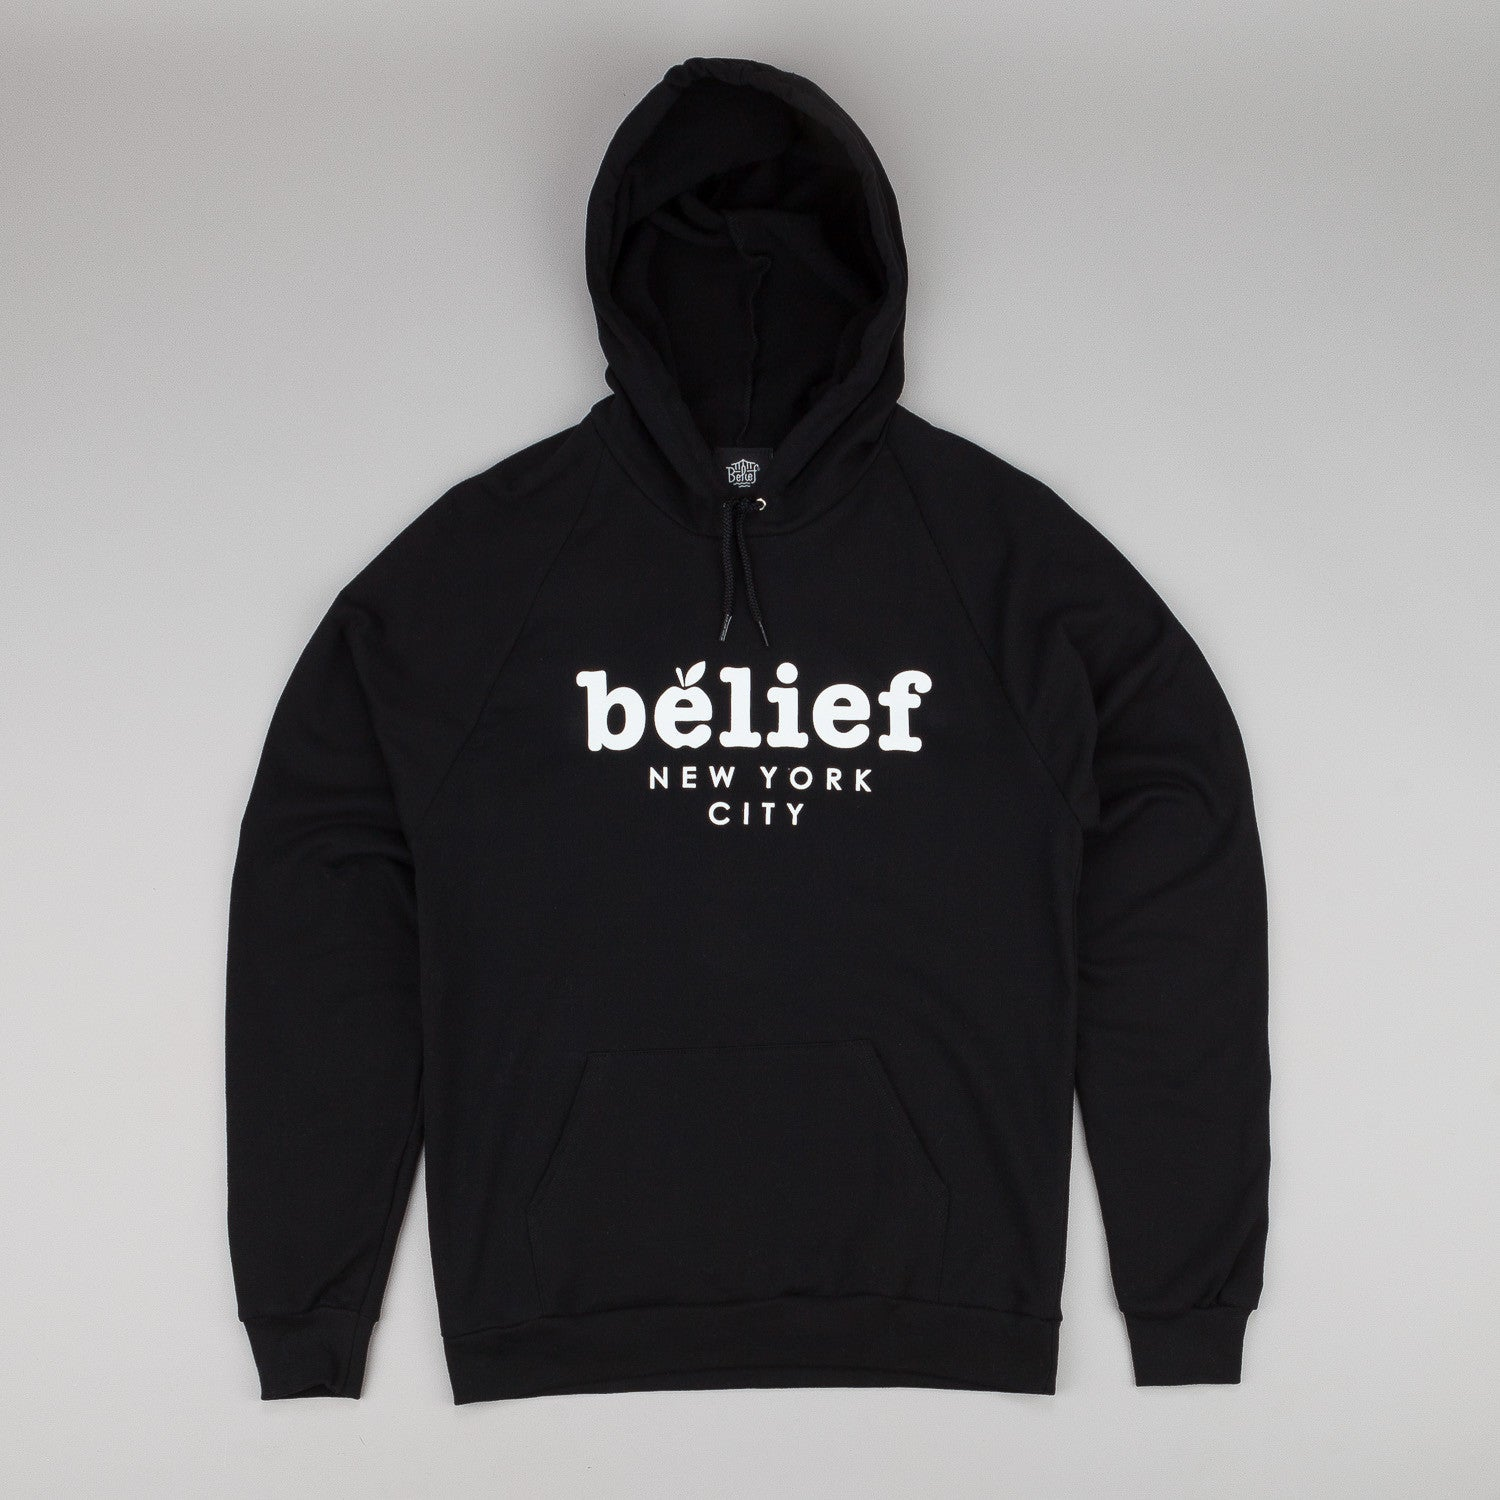 Belief Market Hooded Sweatshirt - Black